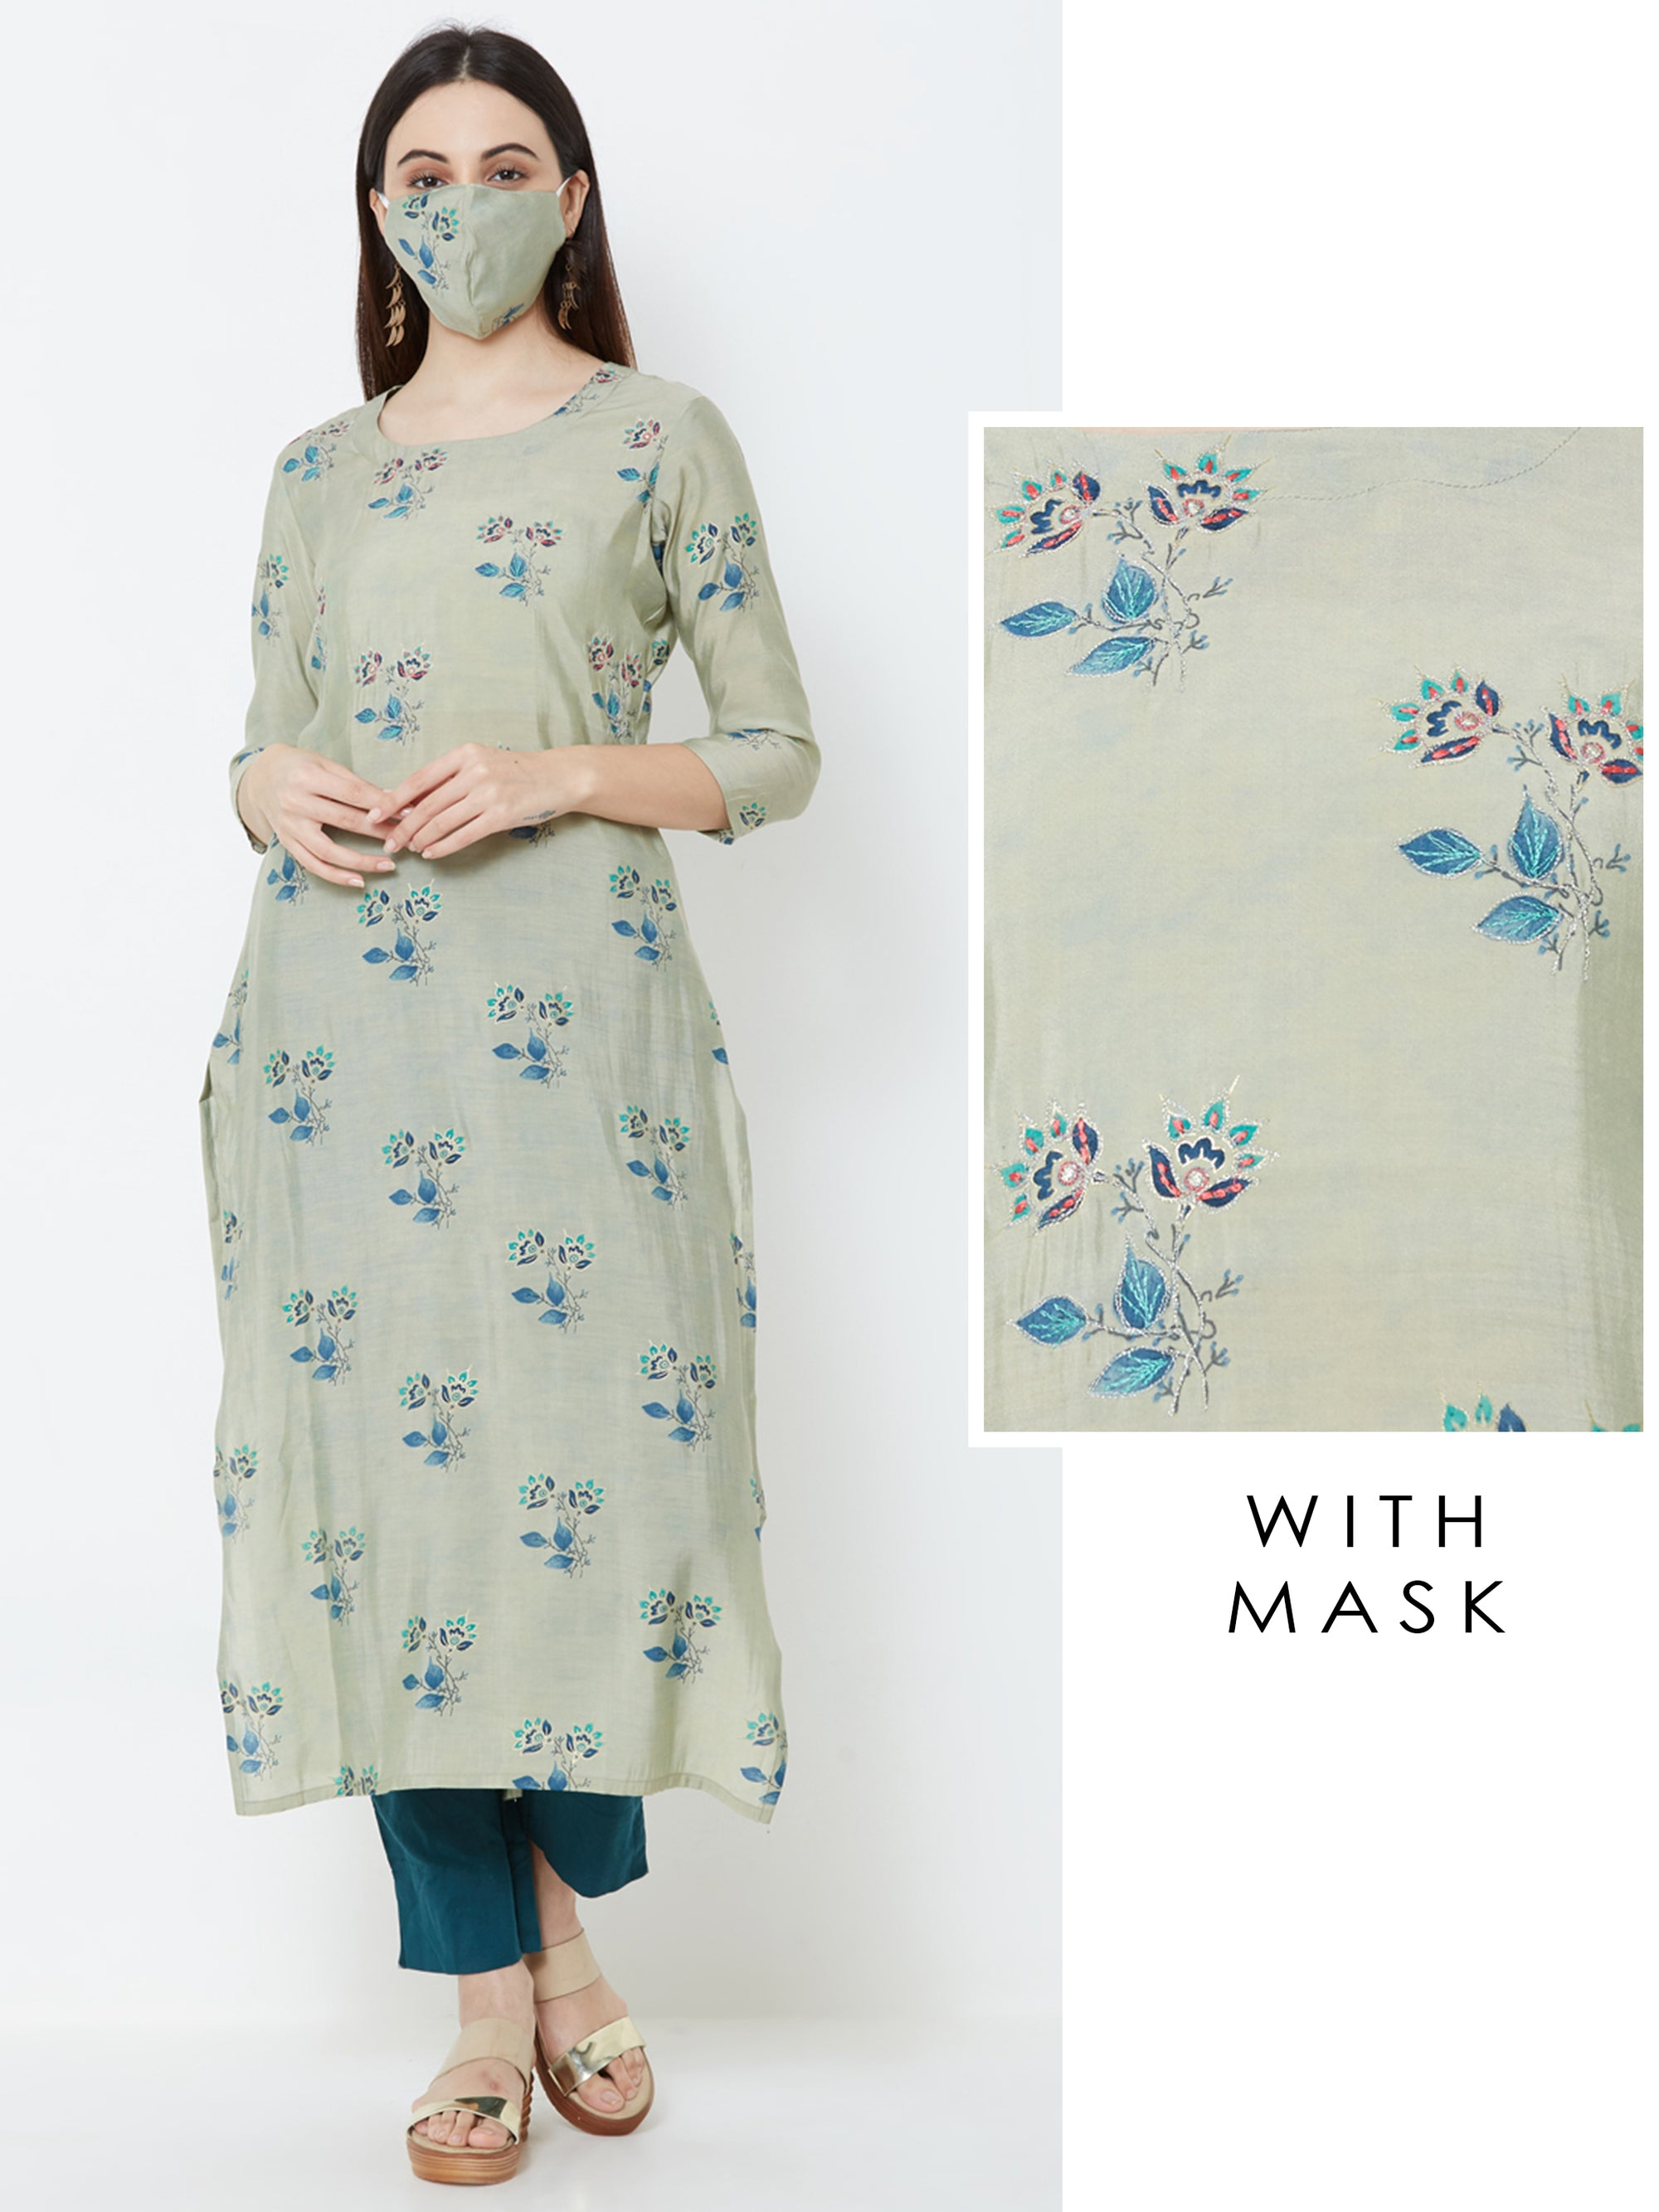 Elegant Floral Printed Kurta with Matching Mask – Green